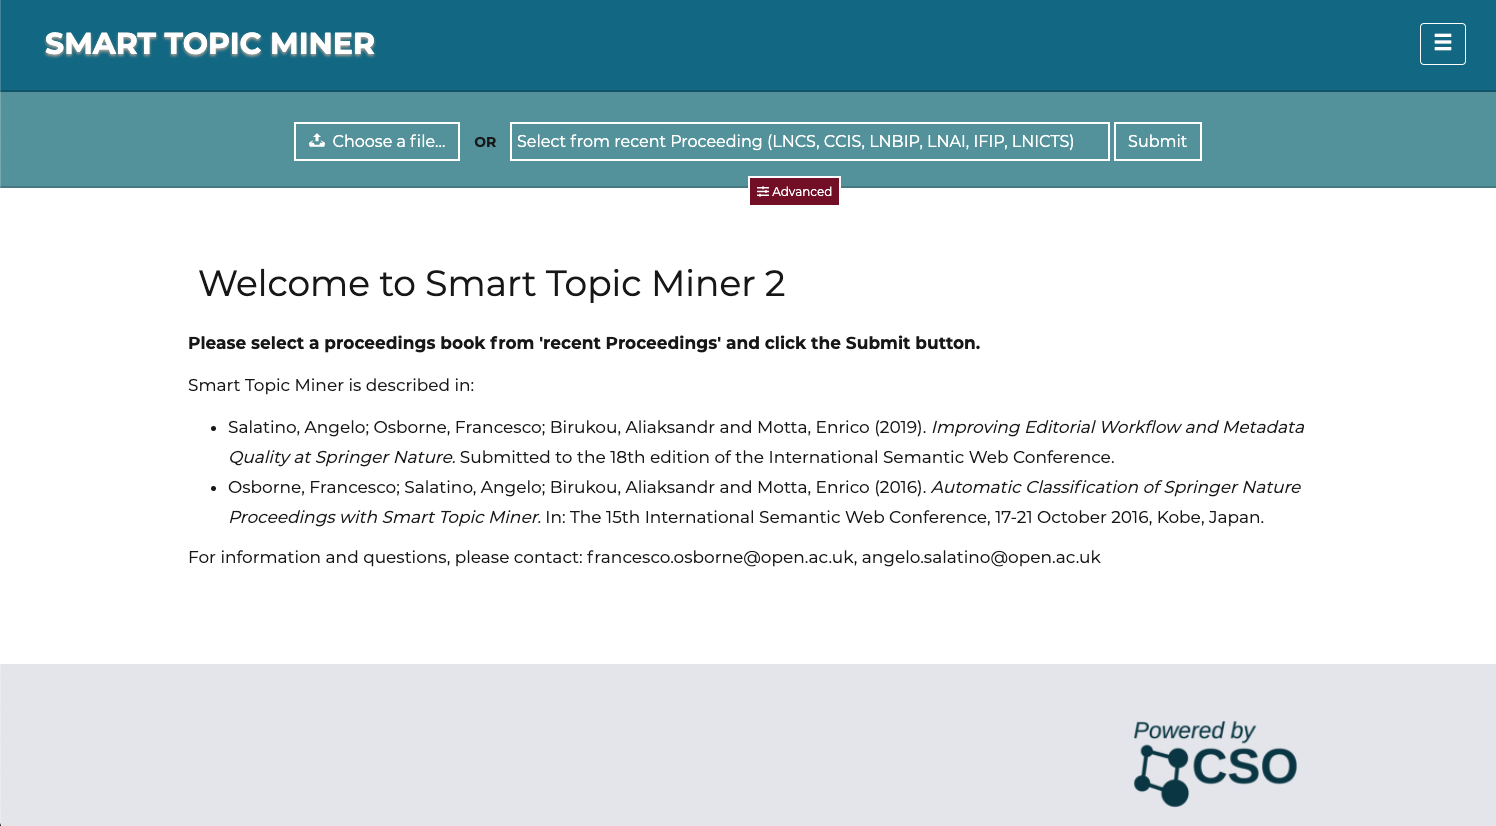 Smart Topic Miner 2 - Improving Editorial Workflow and Metadata Quality at Springer Nature